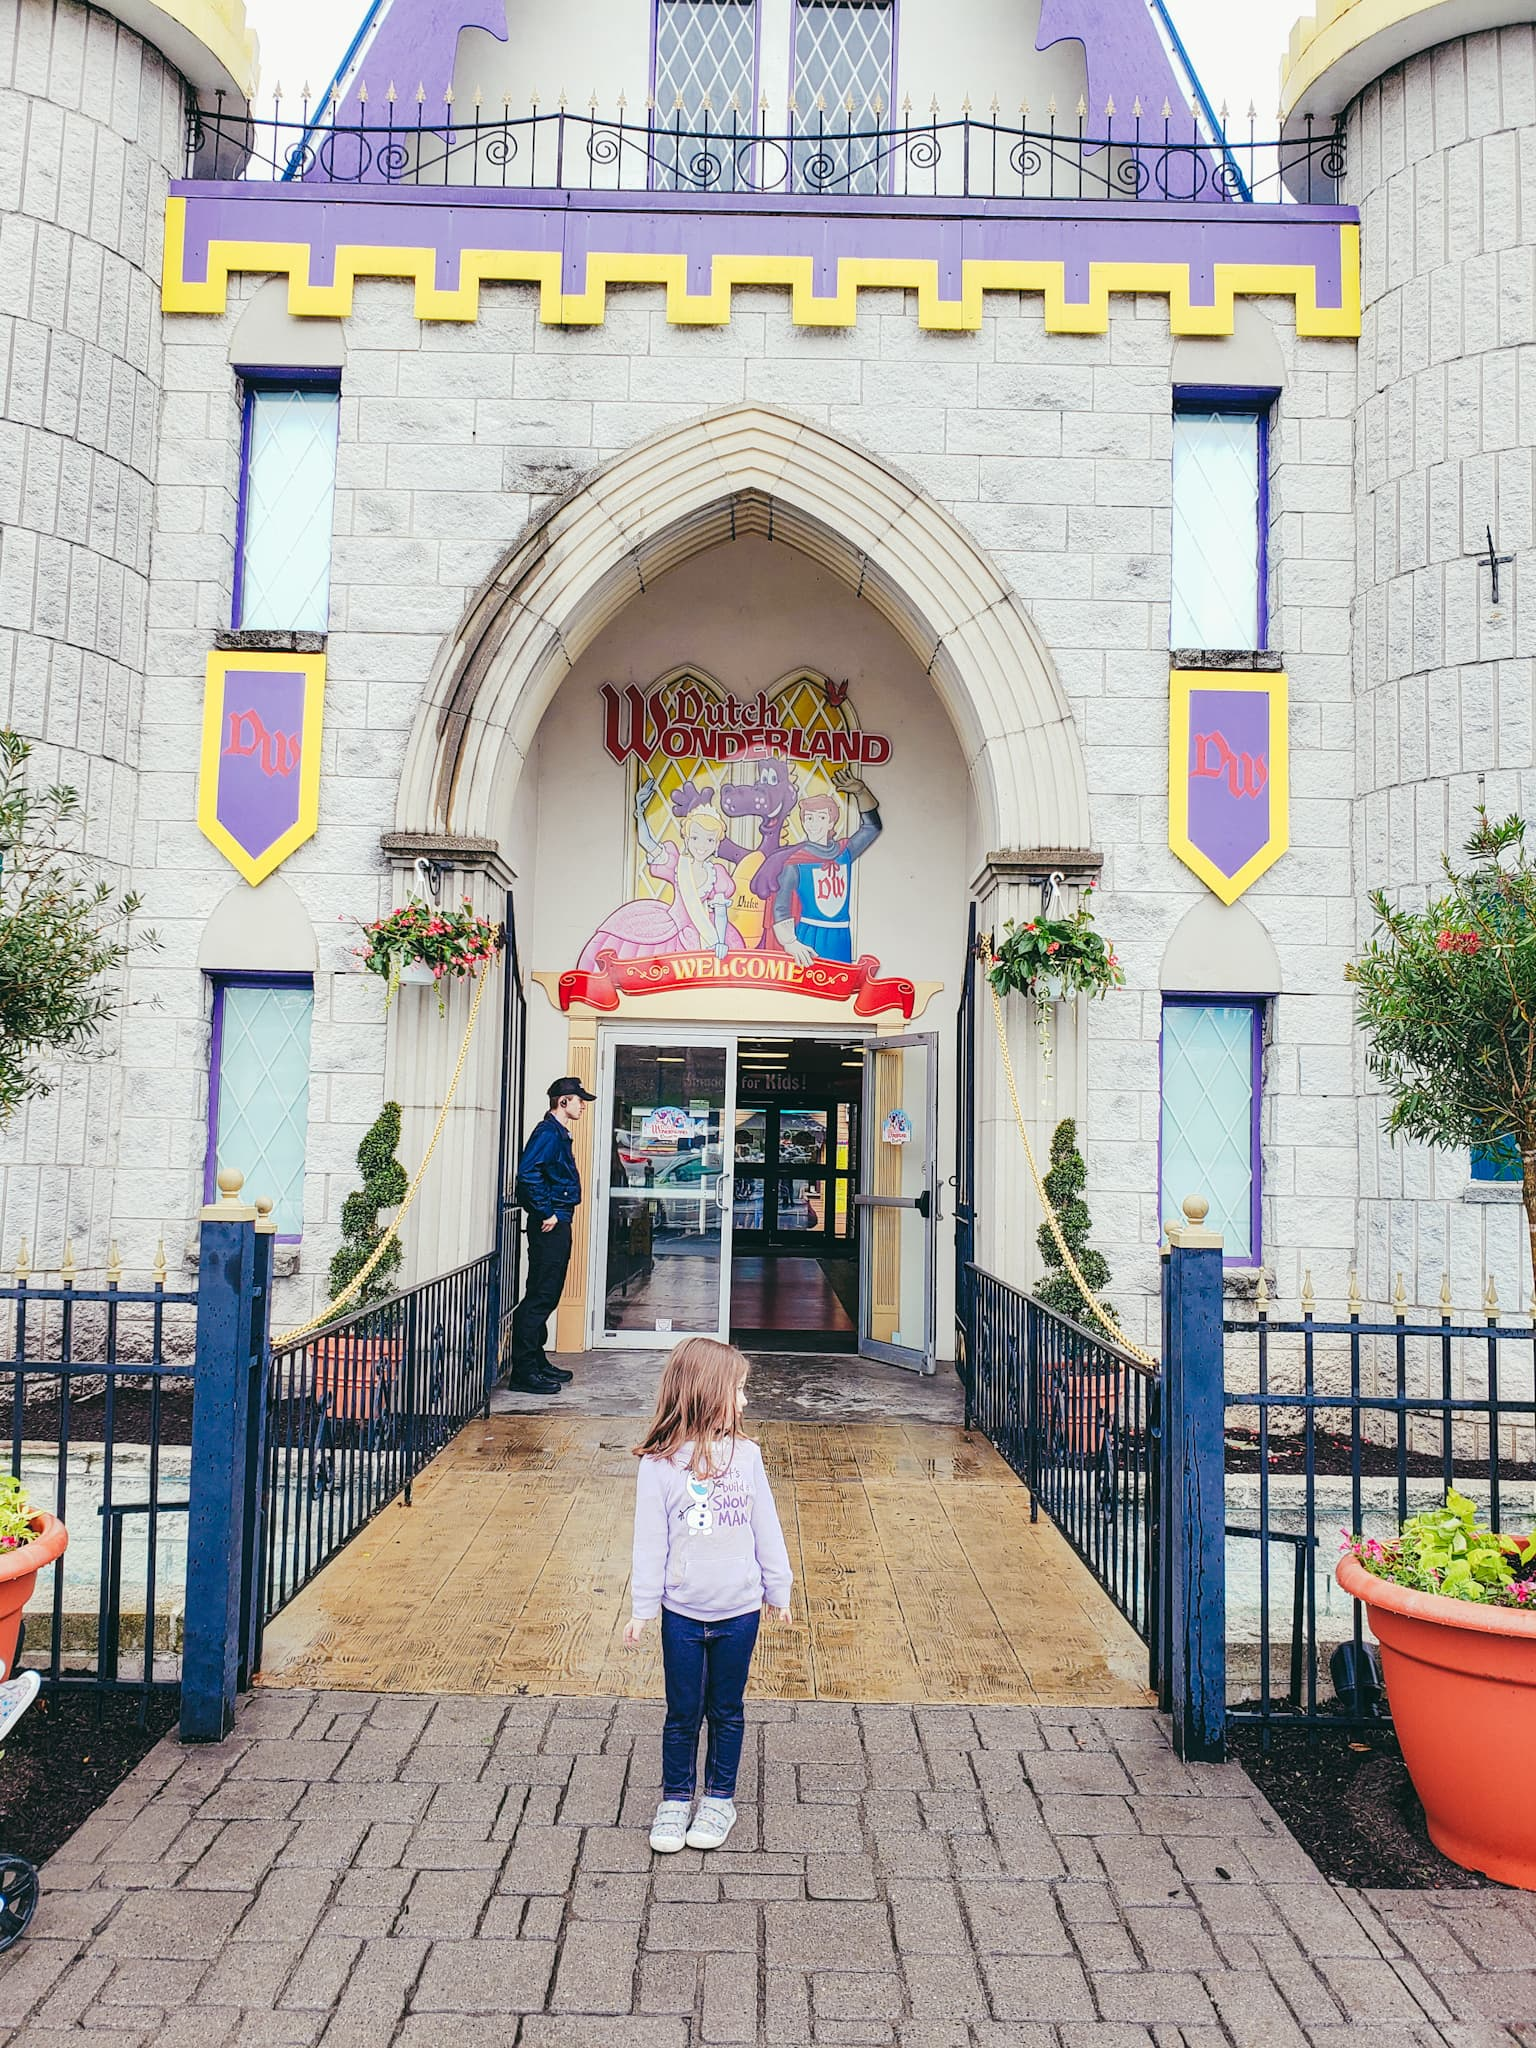 Dutch Wonderland: An Amusement Park For All